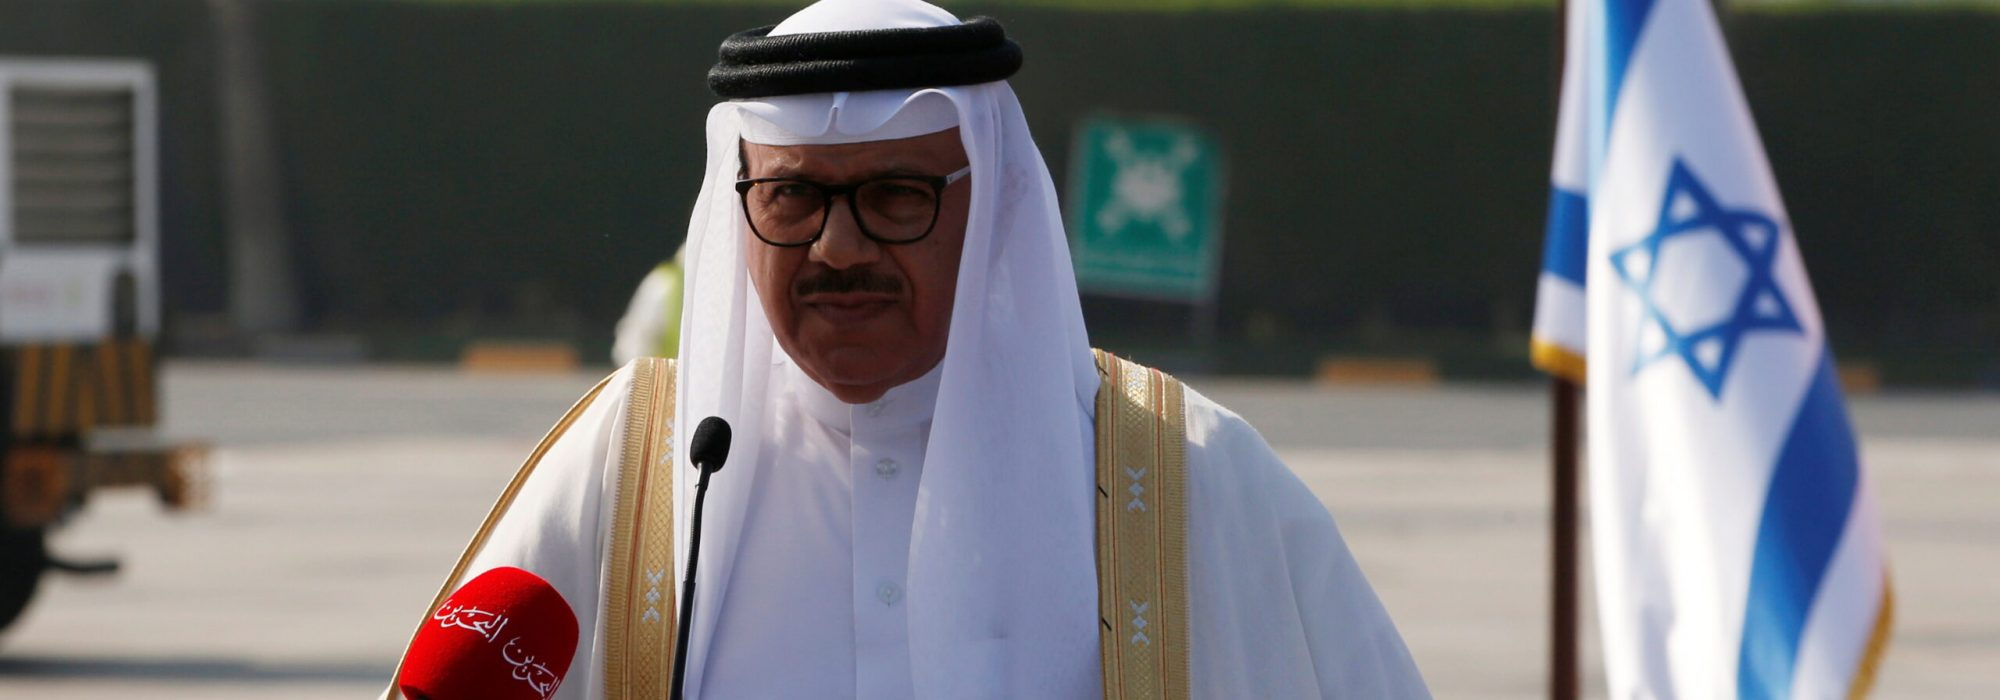 Bahrain's Foreign Minister Abdullatif Al Zayani delivers a statement upon the arrival of an Israeli delegation accompanied by the U.S. treasury secretary, in Muharraq, Bahrain October 18, 2020.,Image: 564327762, License: Rights-managed, Restrictions: , Model Release: no, Credit line: RONEN ZVULUN / Reuters / Forum